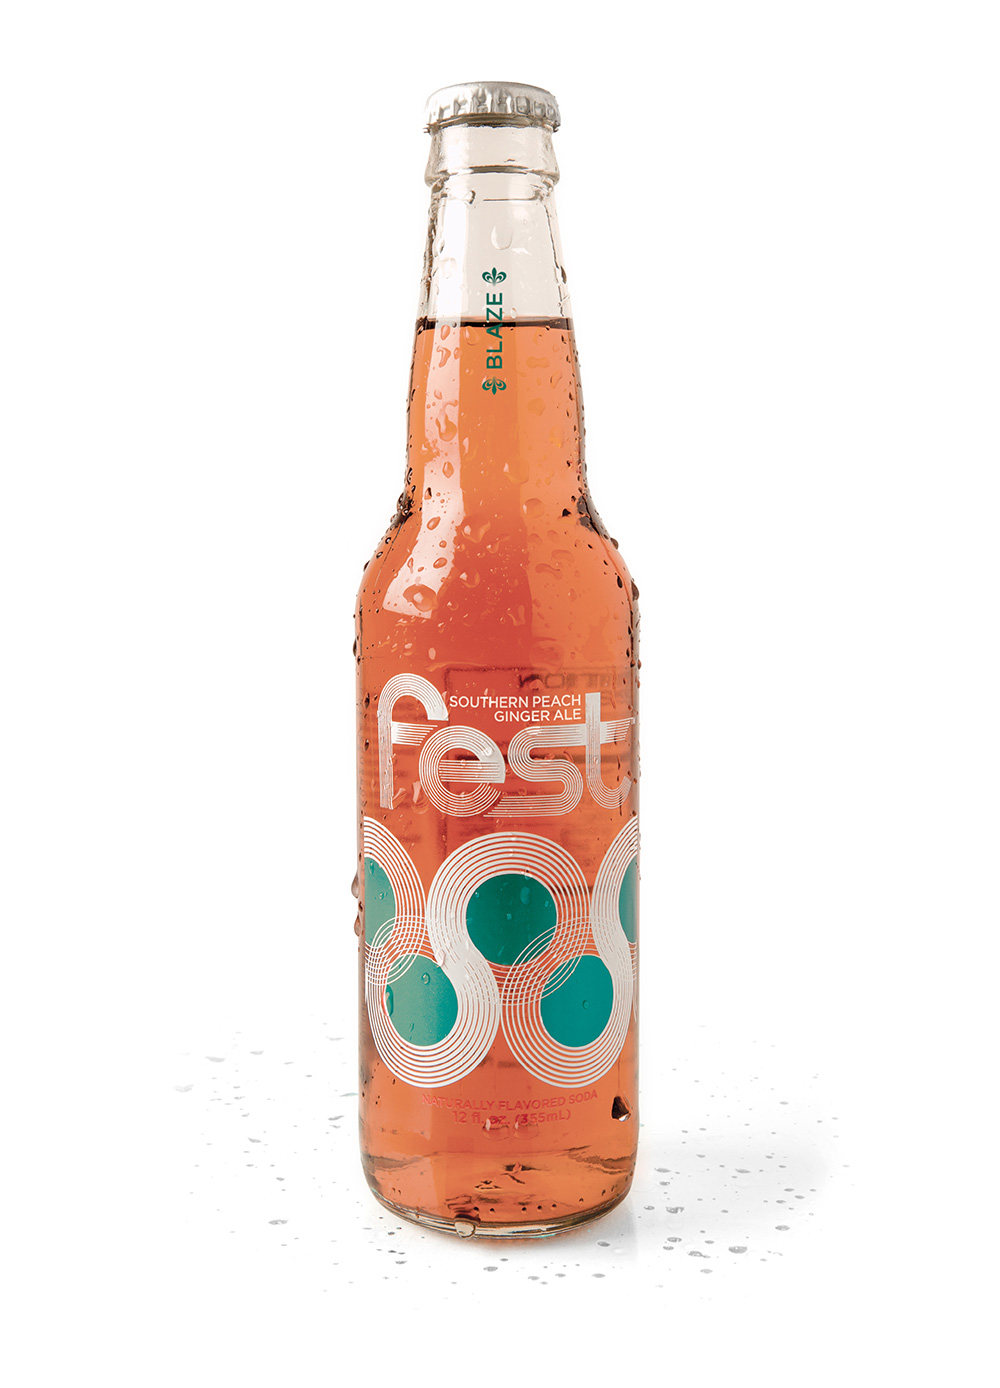 Fest Ice Cold Southern Peach Ginger Ale Soda